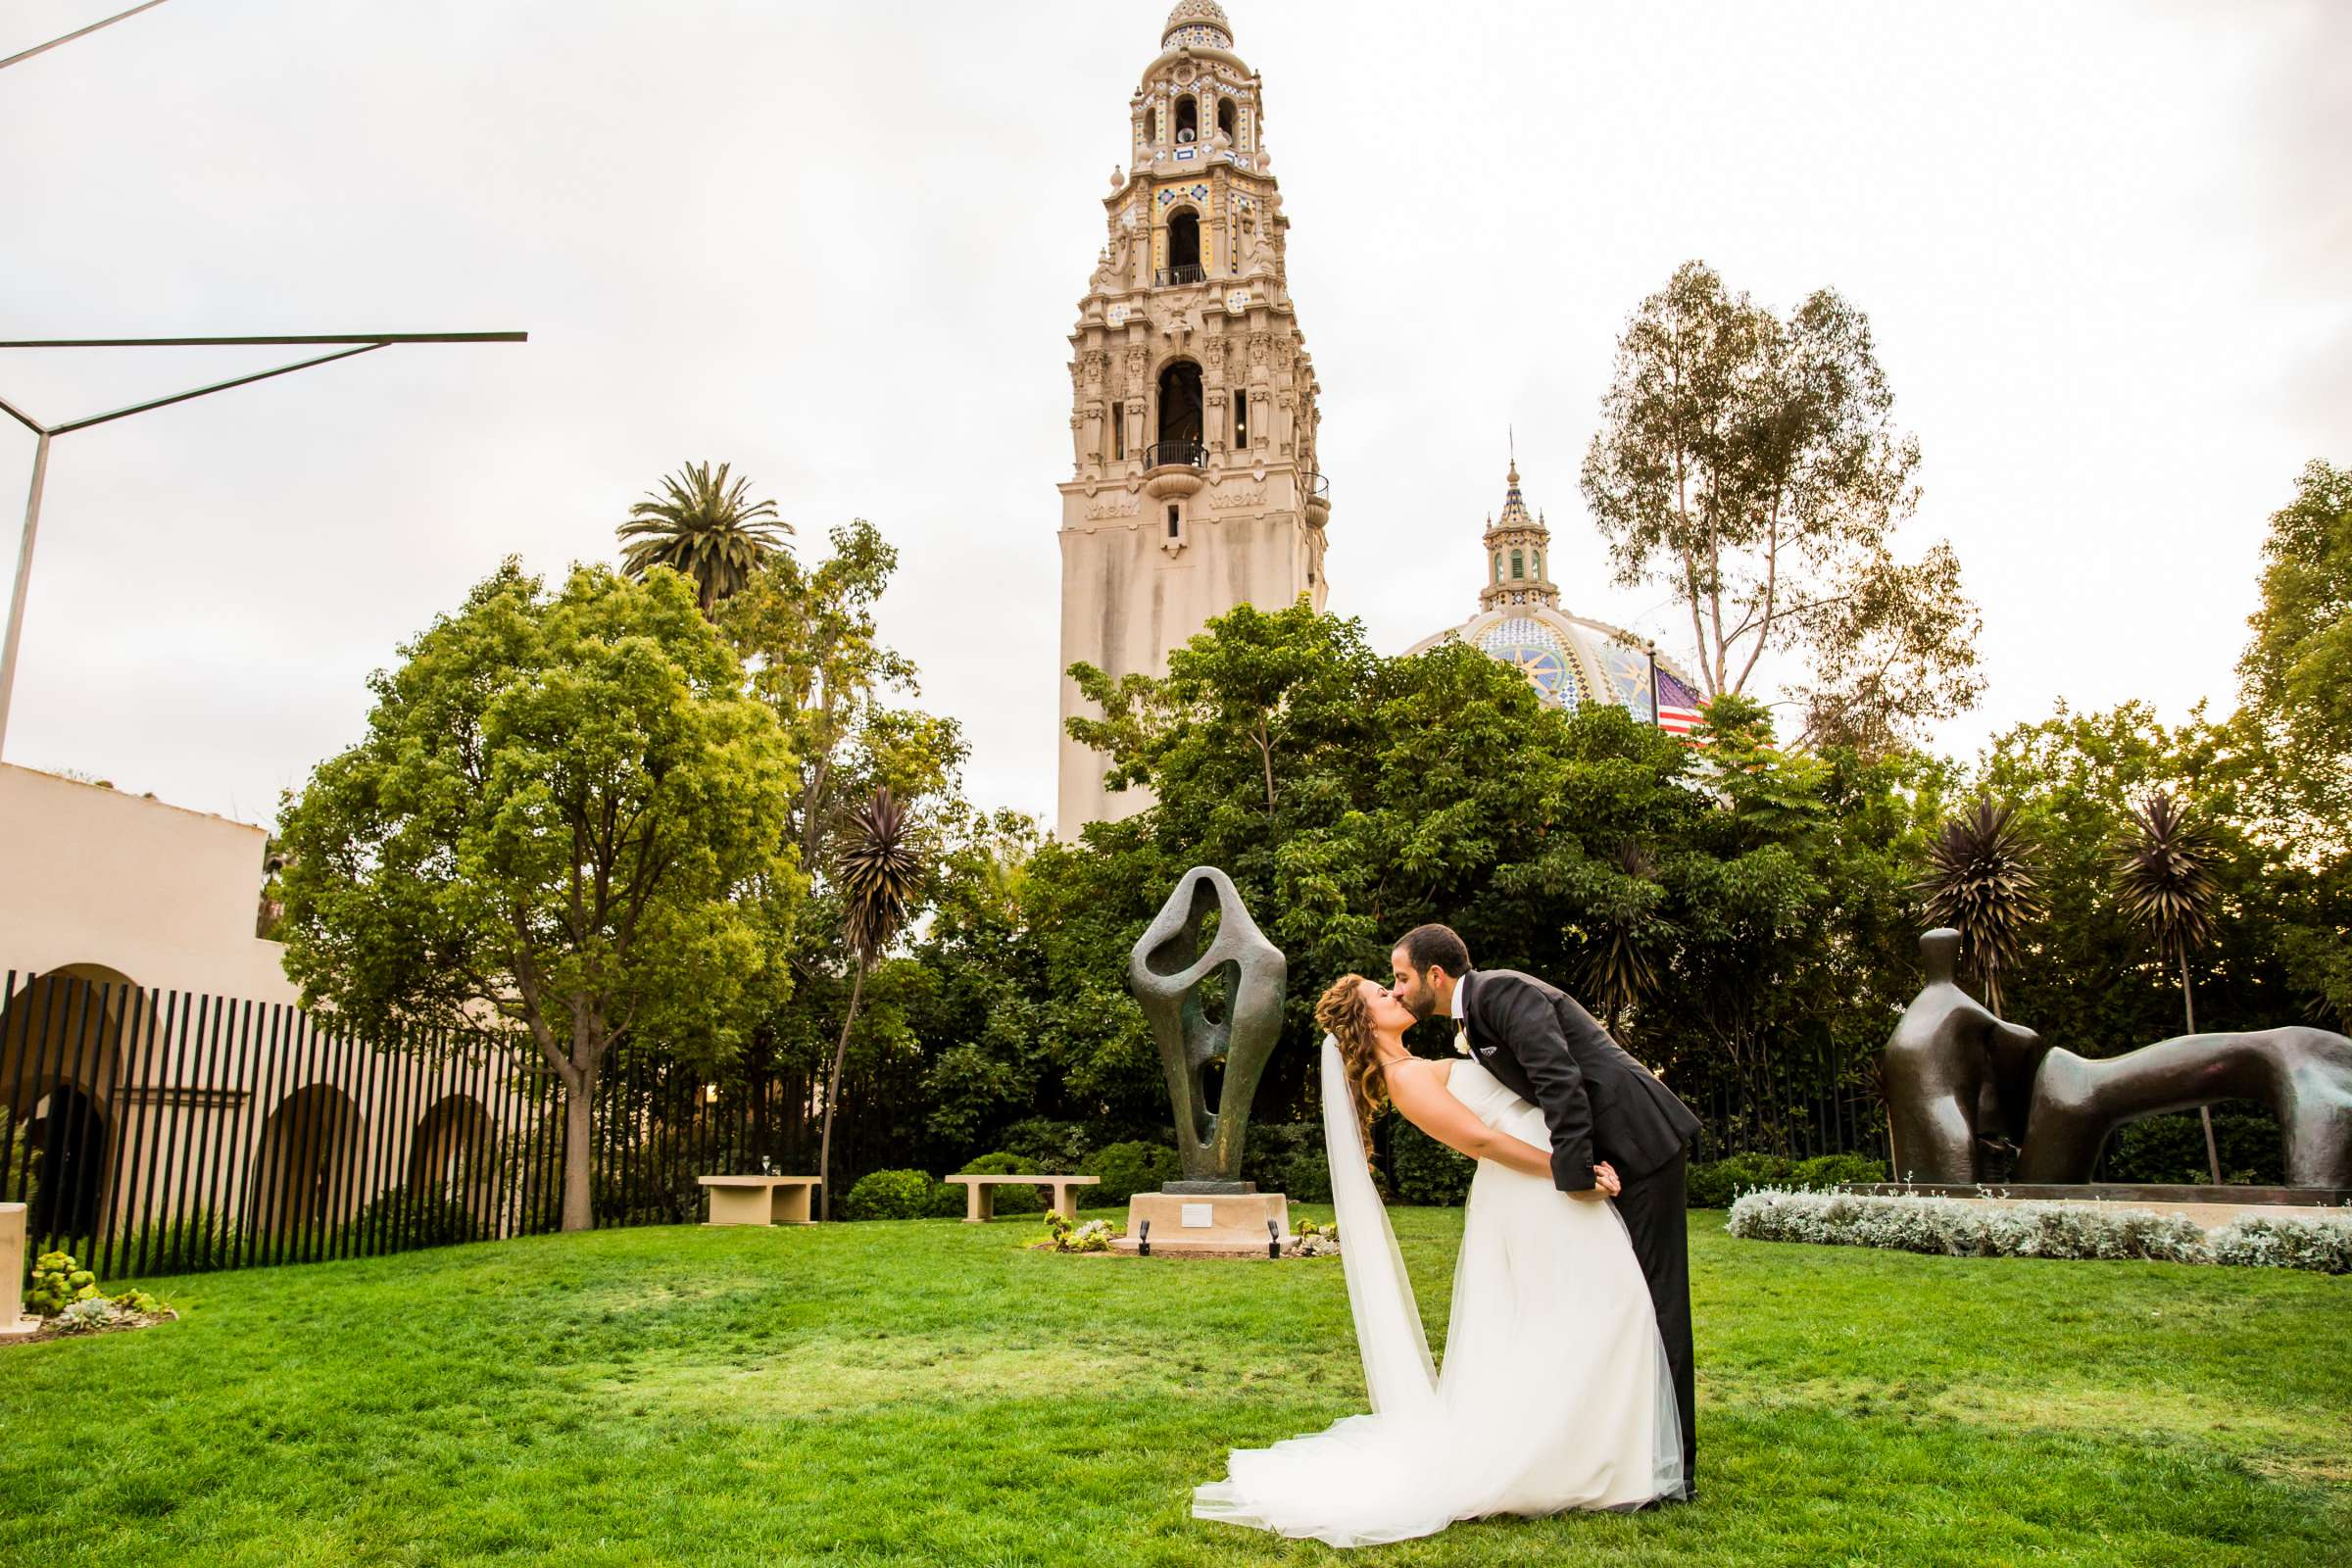 San Diego Museum of Art Wedding coordinated by First Comes Love Weddings & Events, Ruthie and Larry Wedding Photo #236755 by True Photography